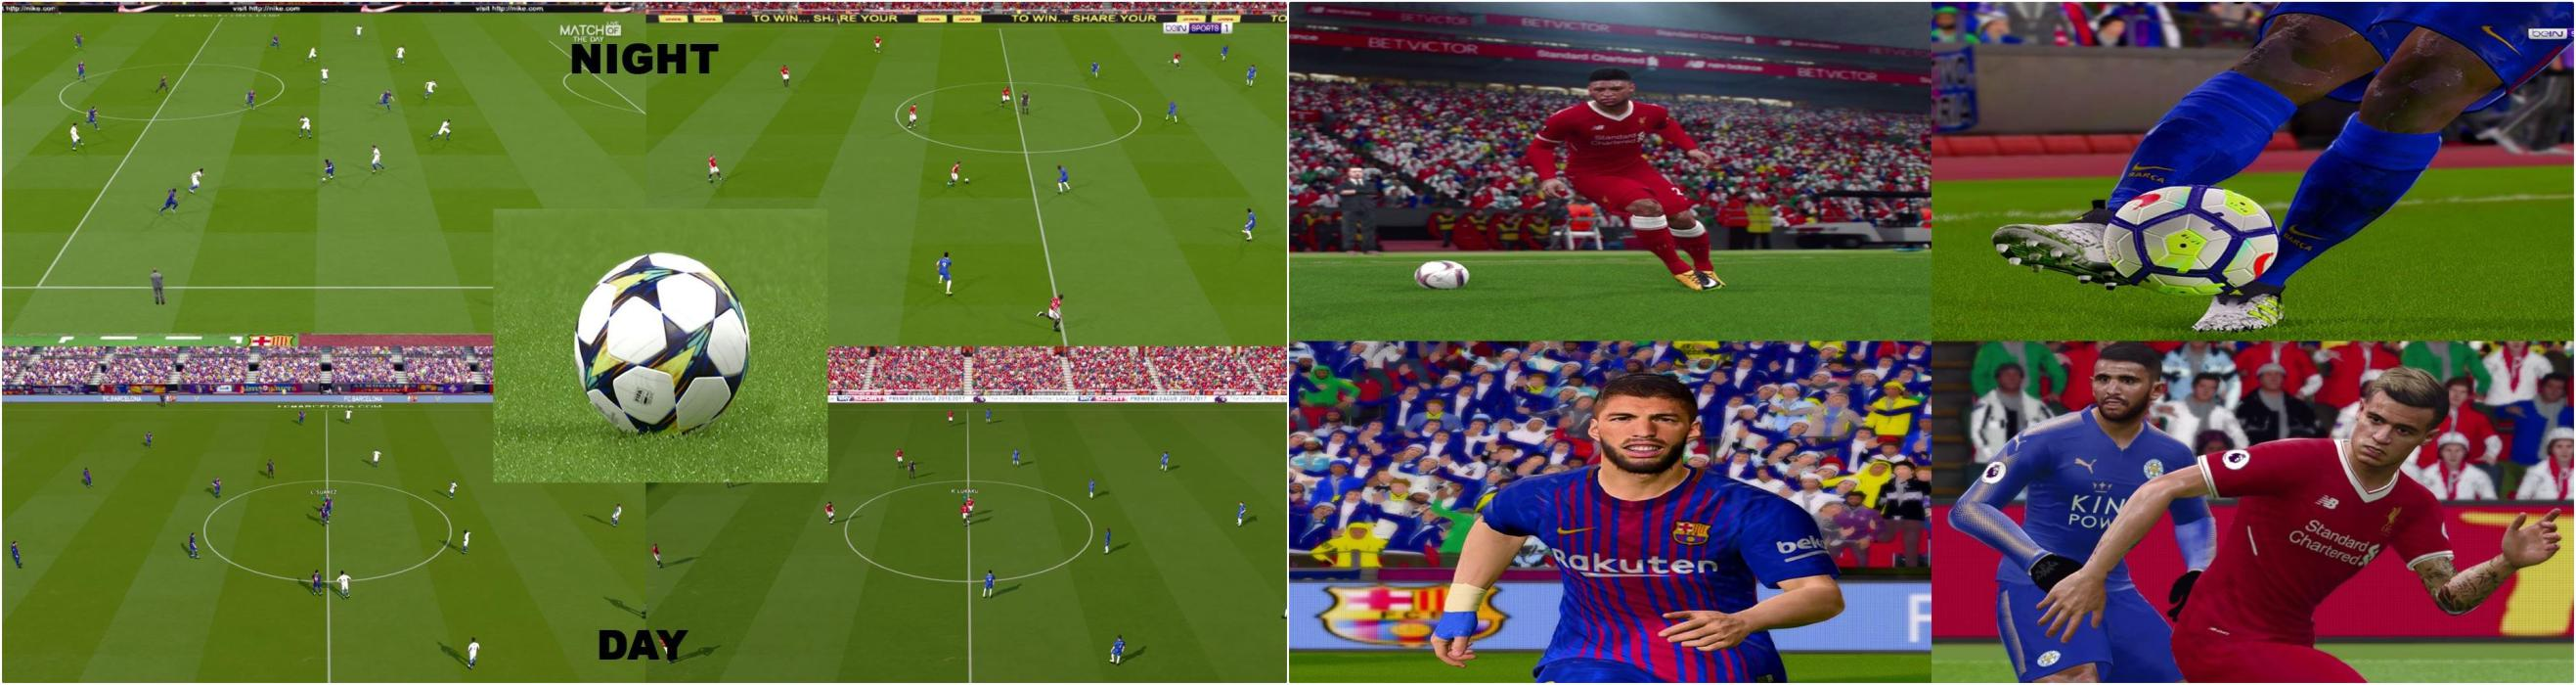 PES 17 Graphic Pack Like PES 18